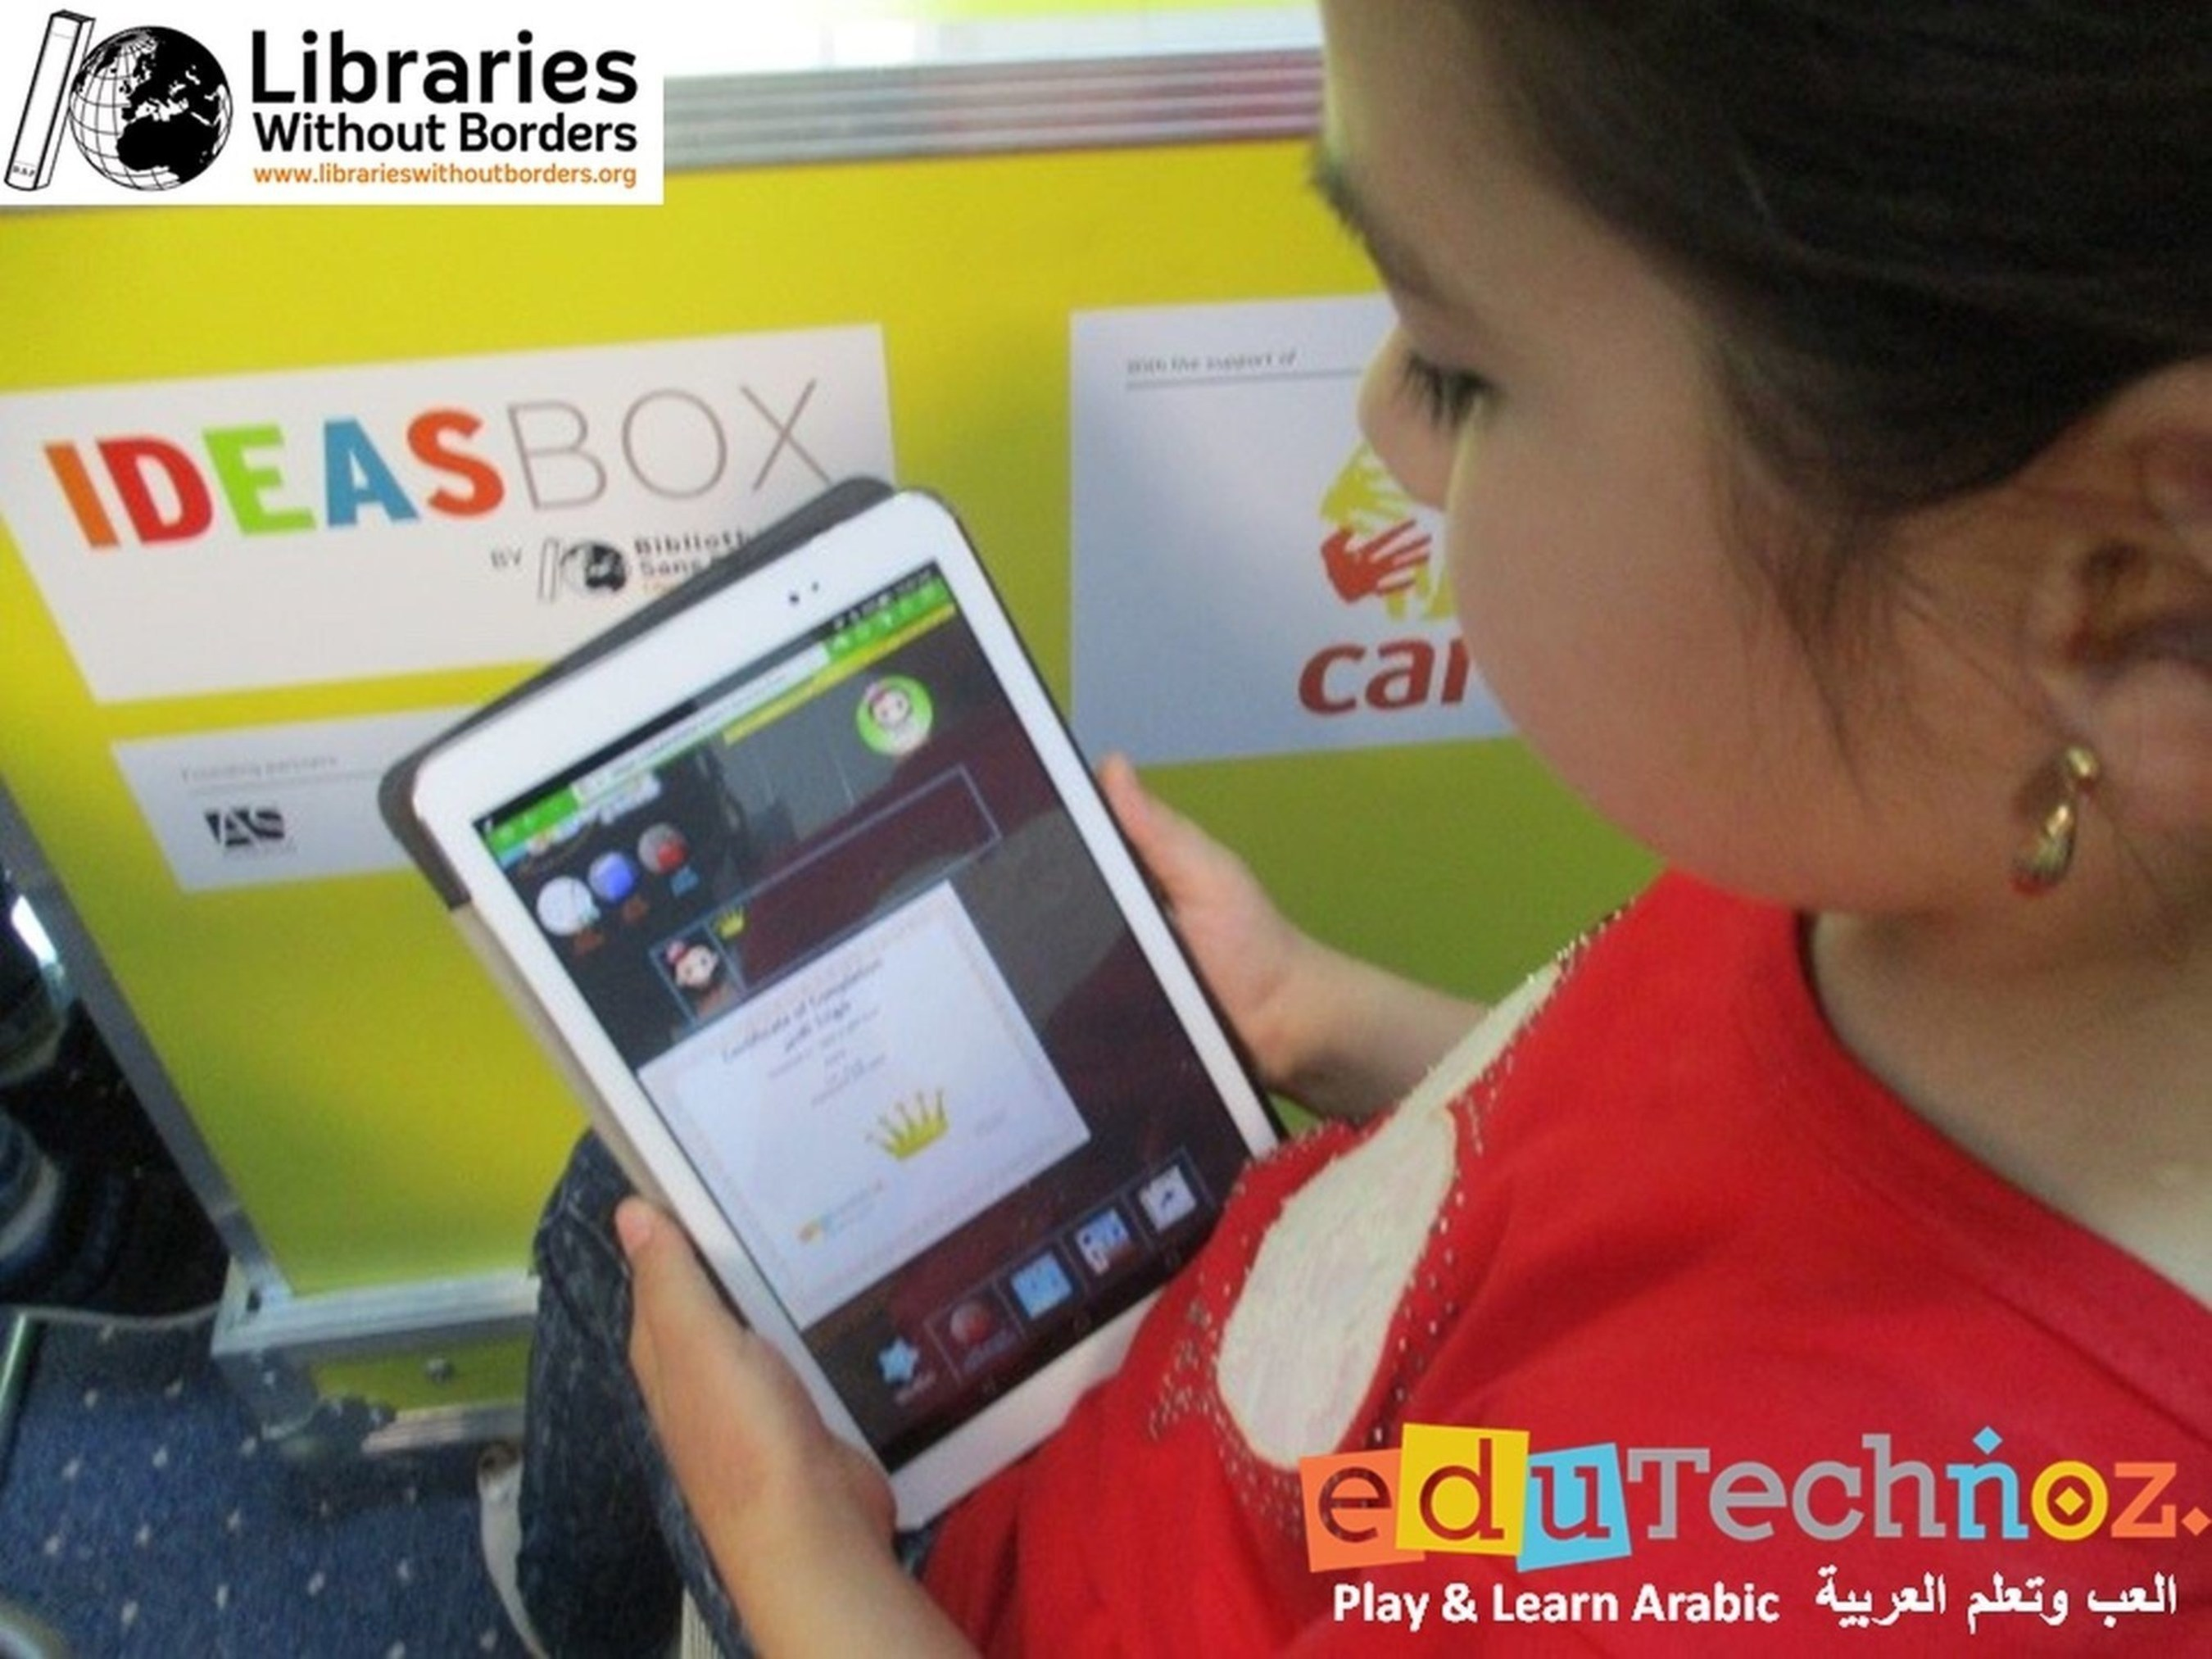 Libraries Without Borders and eduTechnoz, two organisations supported by the WISE Accelerator, started a collaboration that helps Syrian children in Jordan benefit from Arabic lessons through innovative technologies. (PRNewsFoto/WISE)